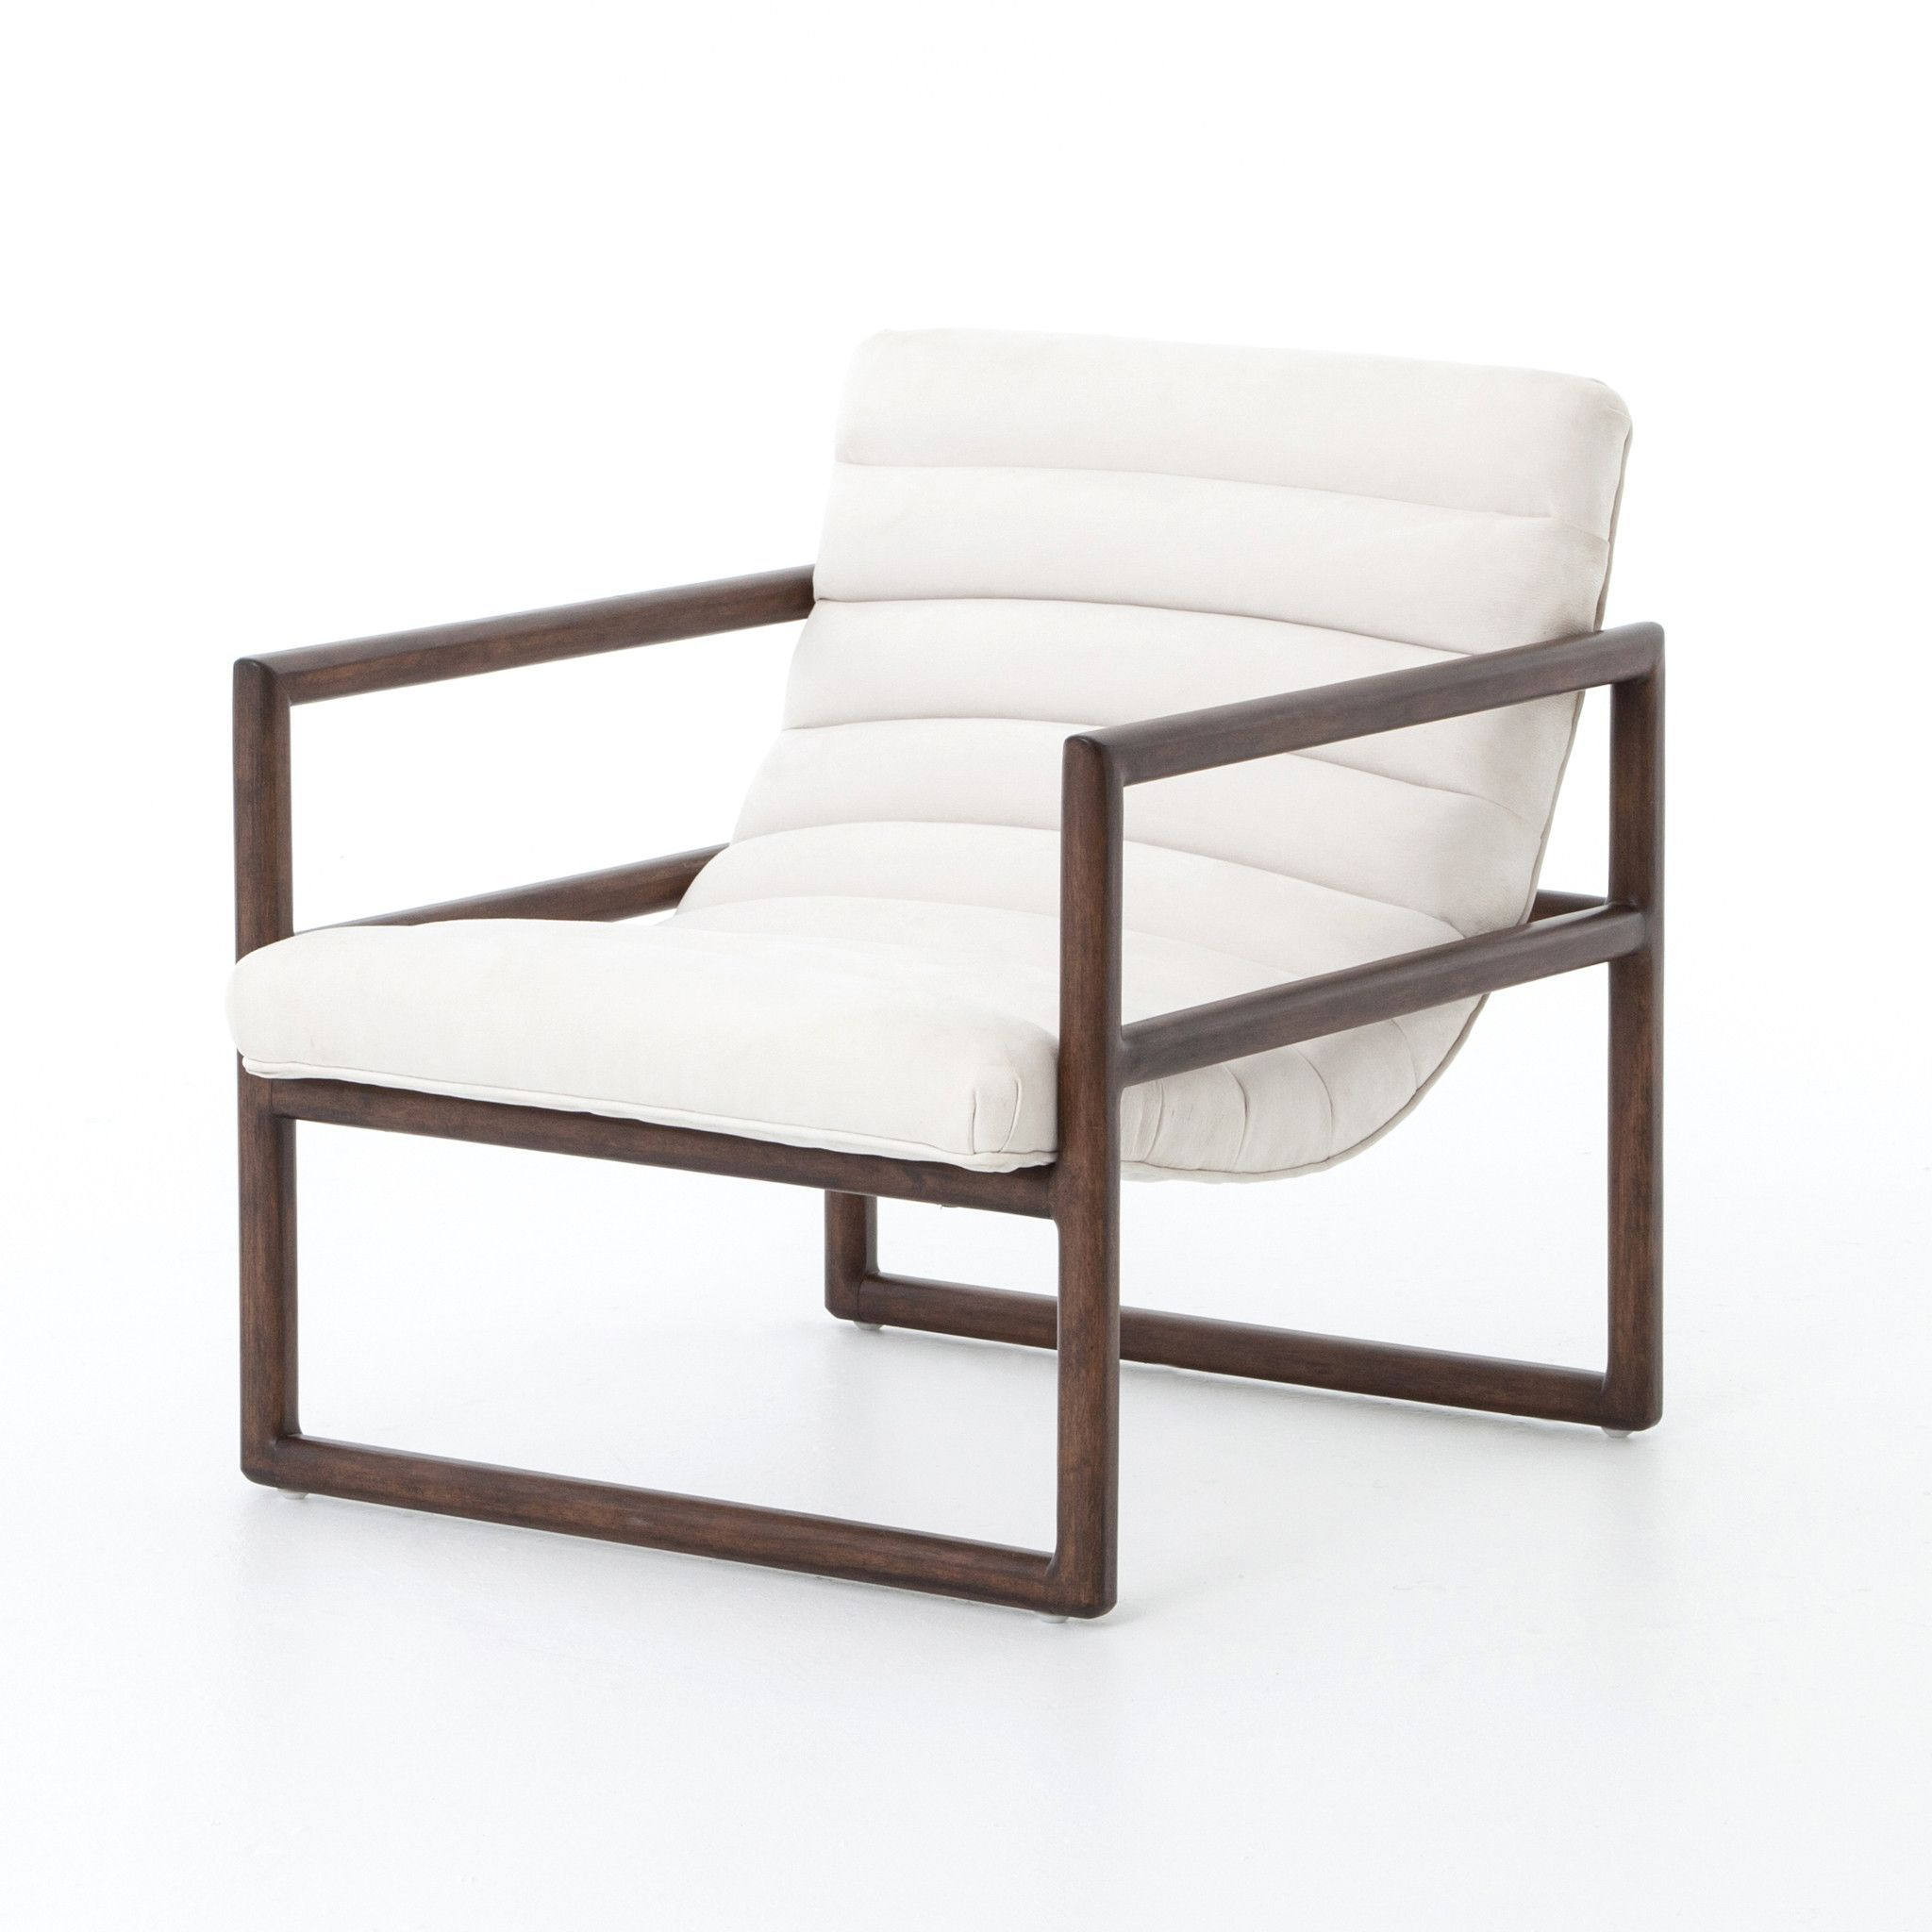 Naomi arm chair | Arms, Squares and Products